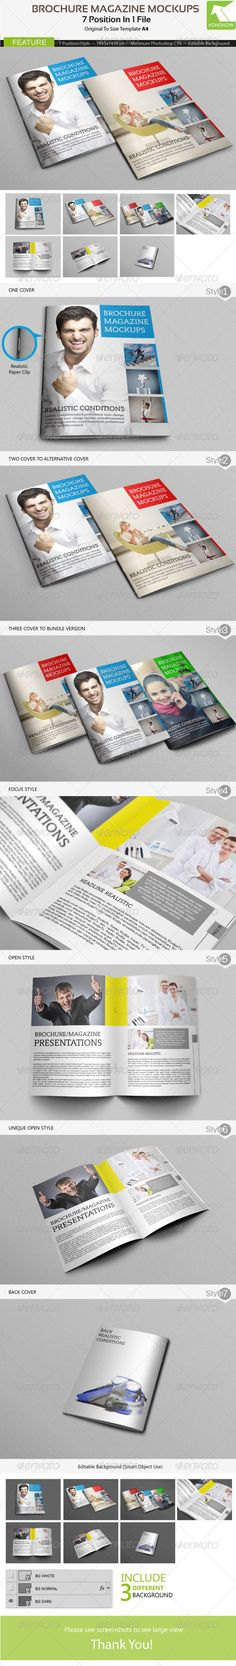 Brochure MockUps — Photoshop PSD #premium #mock-ups • Available here → https://graphicriver.net/item/brochure-mockups/4562355?ref=pxcr